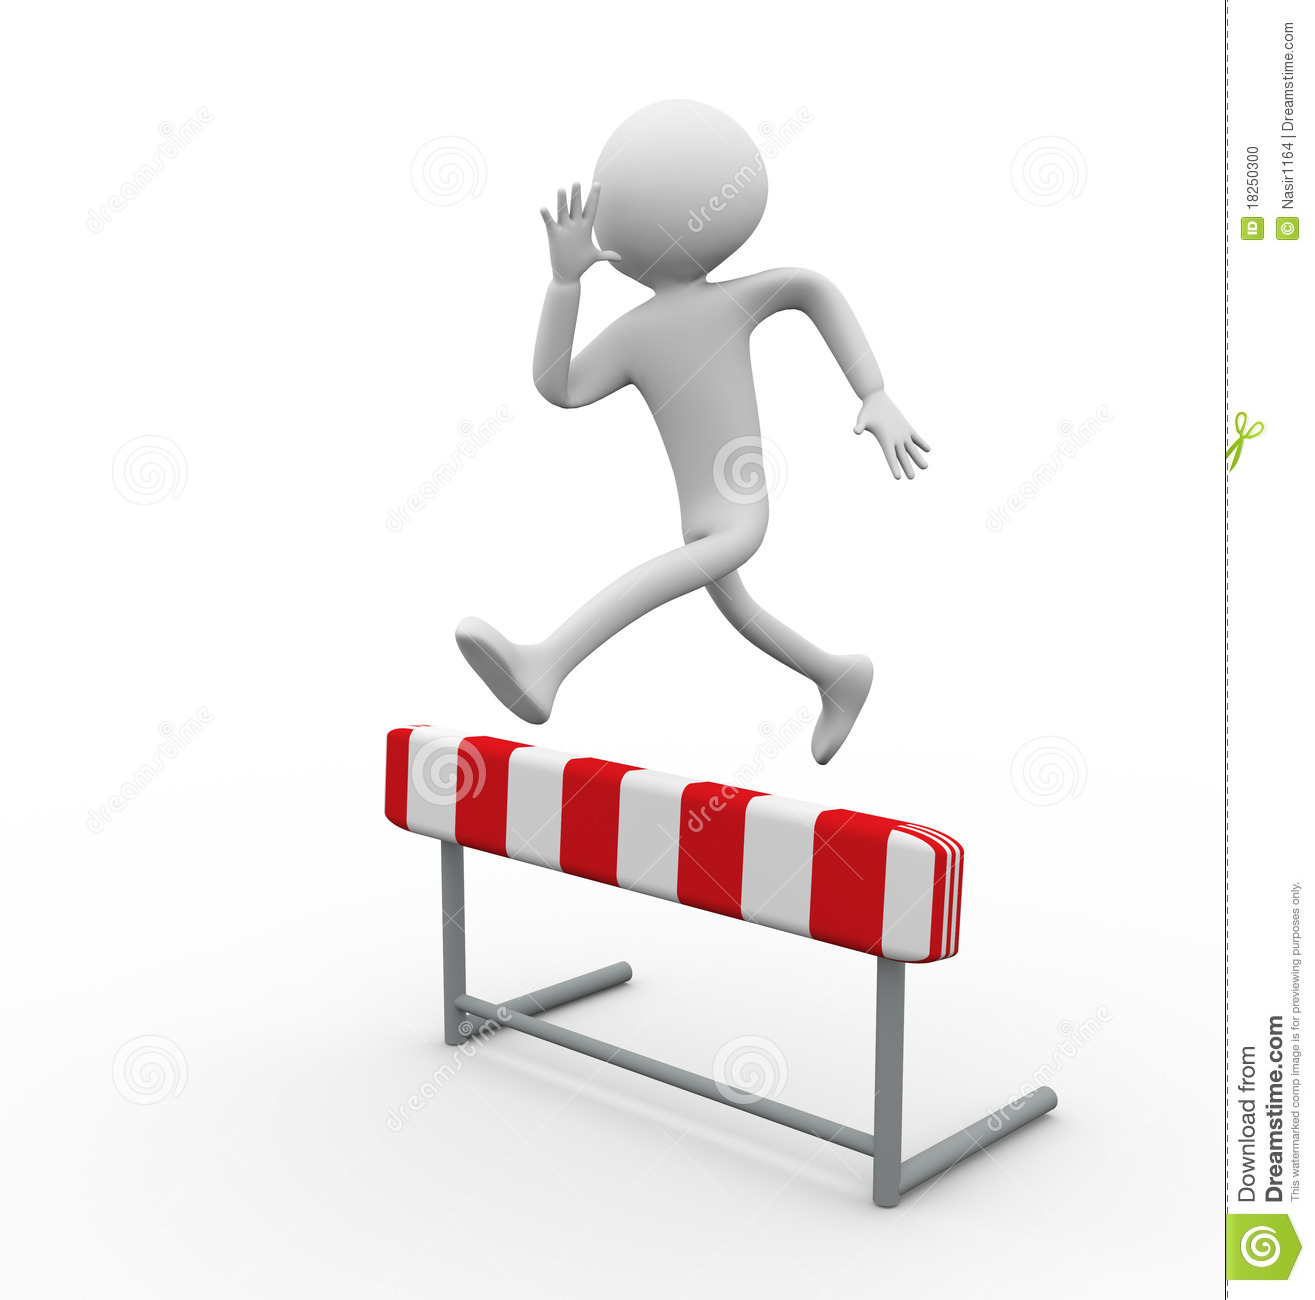 3d Man Hurdle Jump Stock Photo - Image: 18250300